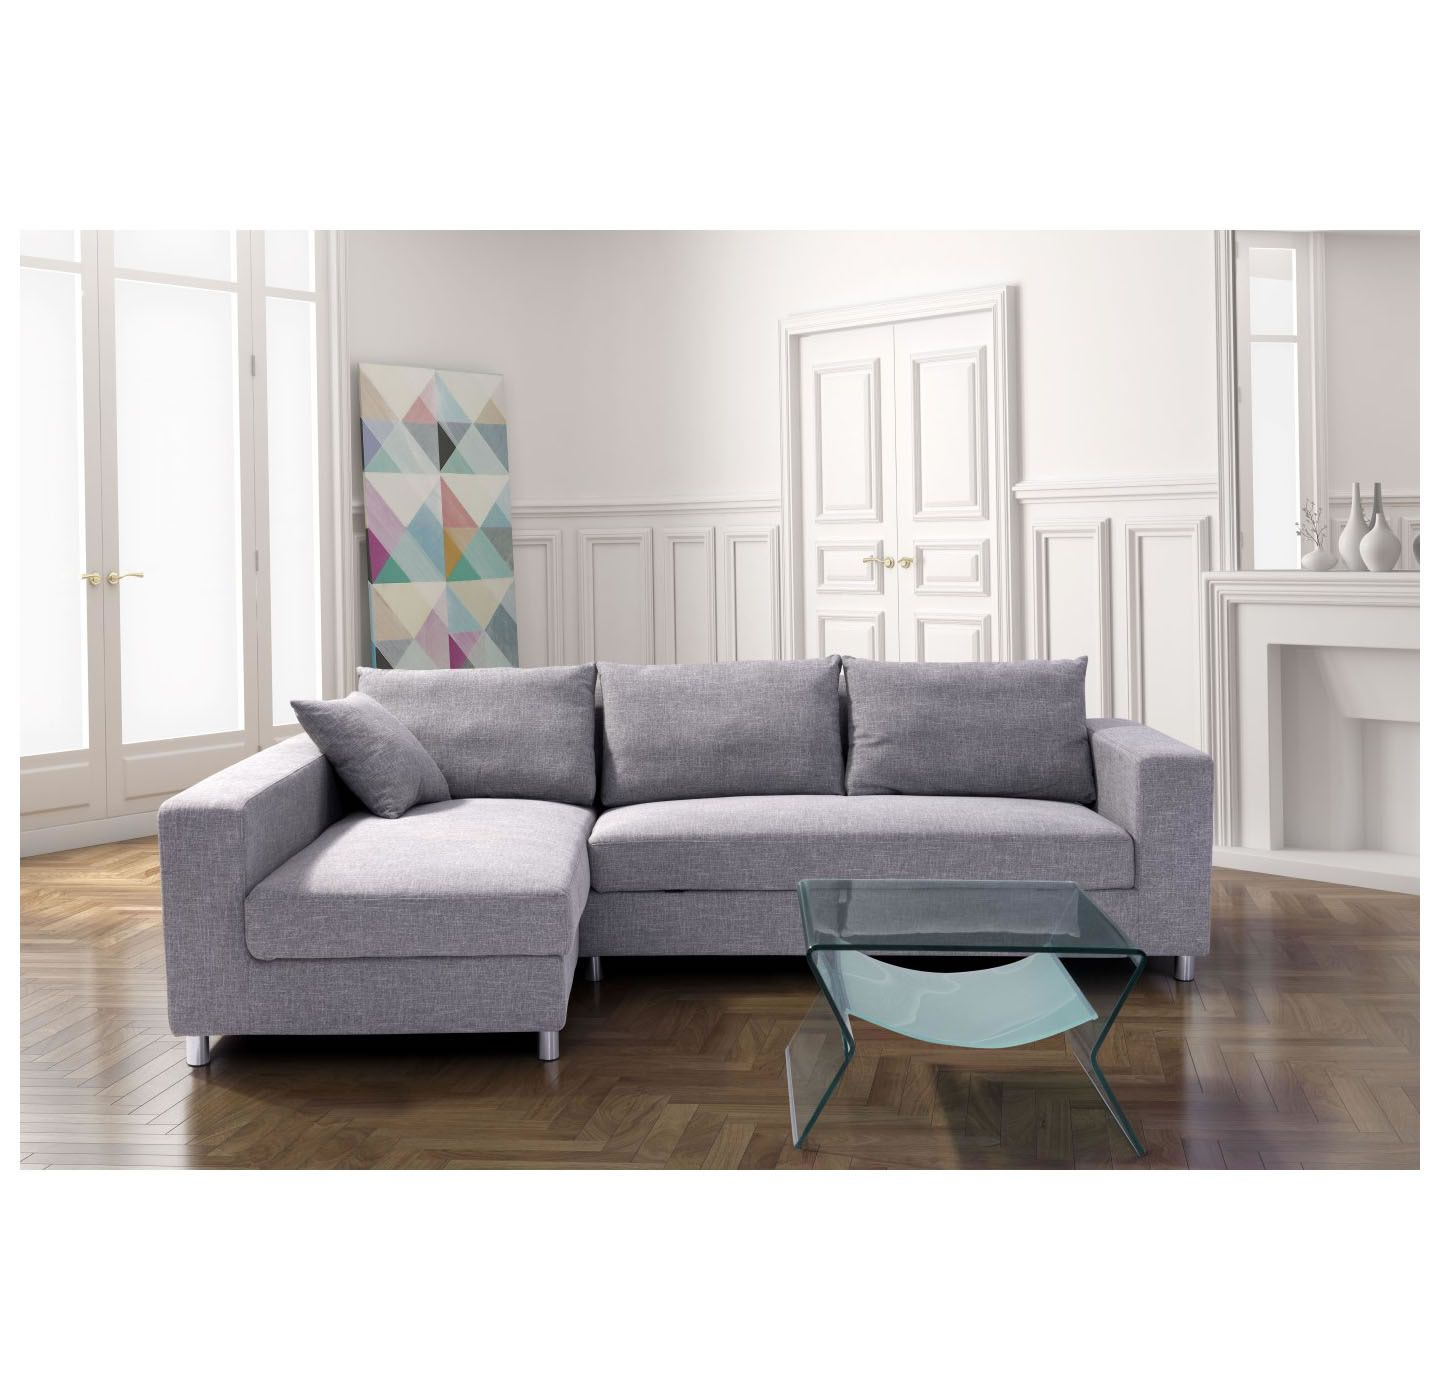 Roxboro sofa lit sectionnel gris disc 900653 for Liquidation sofa sectionnel